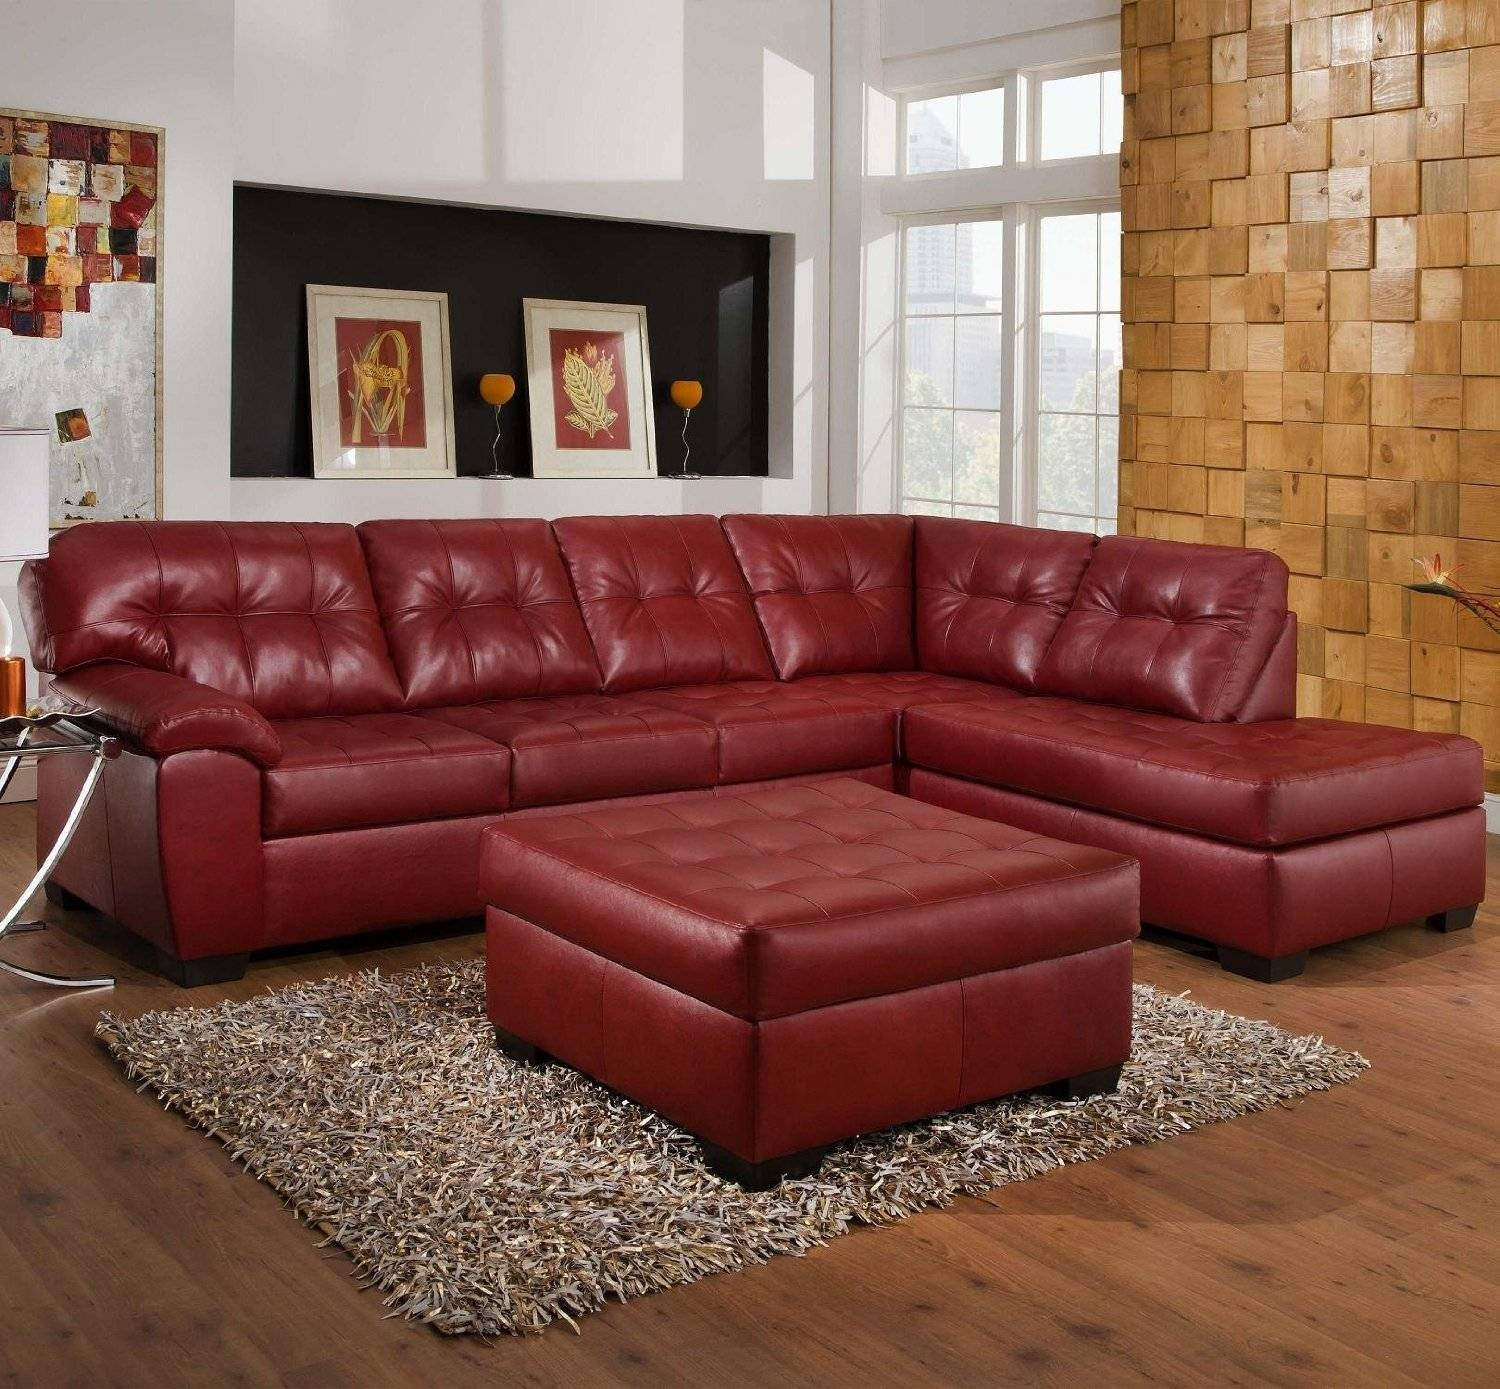 Red Leather Couches Decor : Stylish Red Leather Couches – Home with Dark Red Leather Sofas (Image 11 of 15)